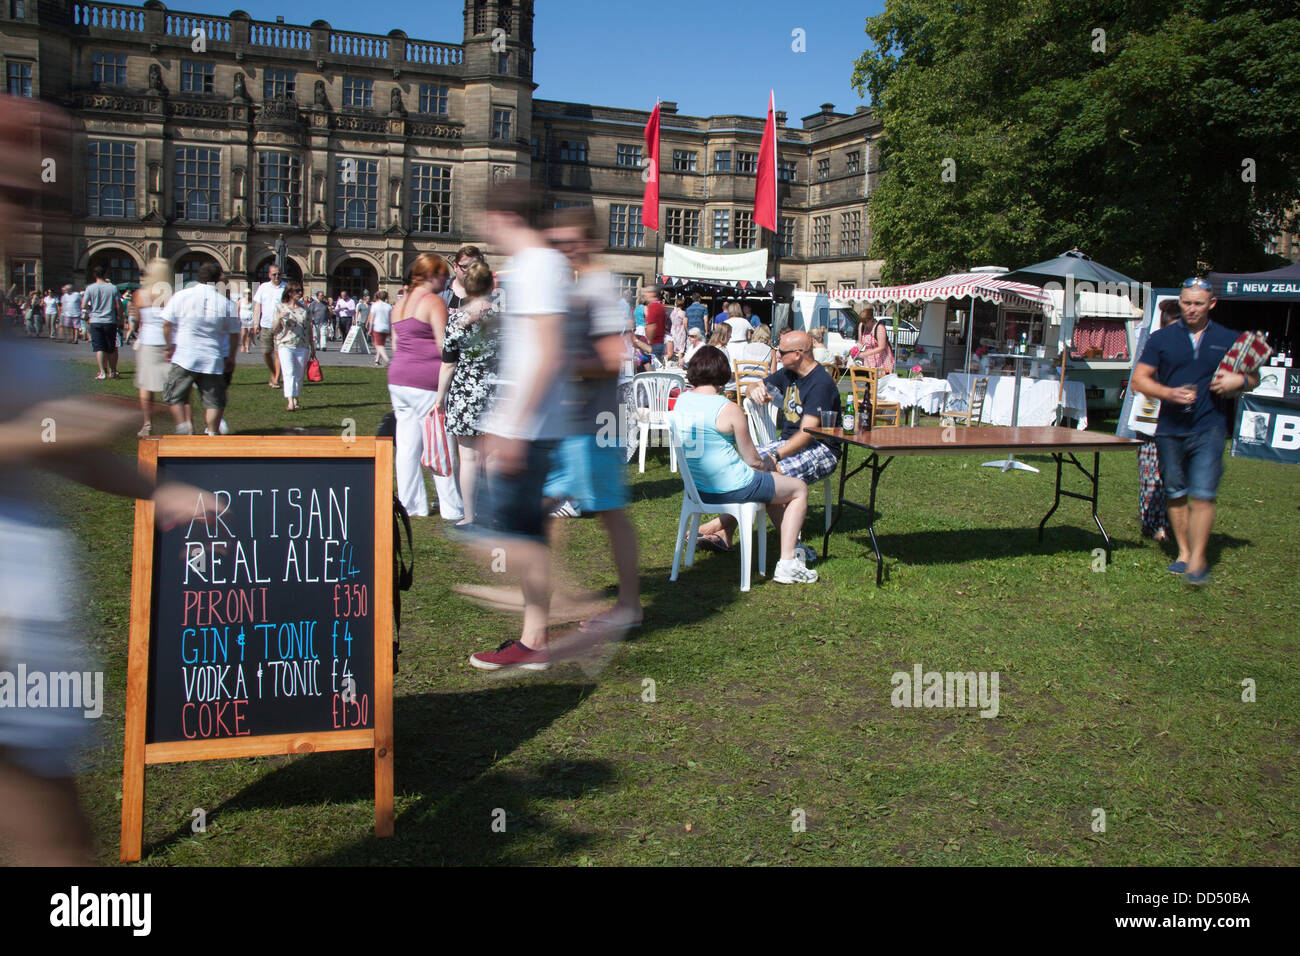 Stonyhurst College, Clitheroe, UK. 26th August, 2013. Crowds and seating at the Great British Food Festival taking - Stock Image